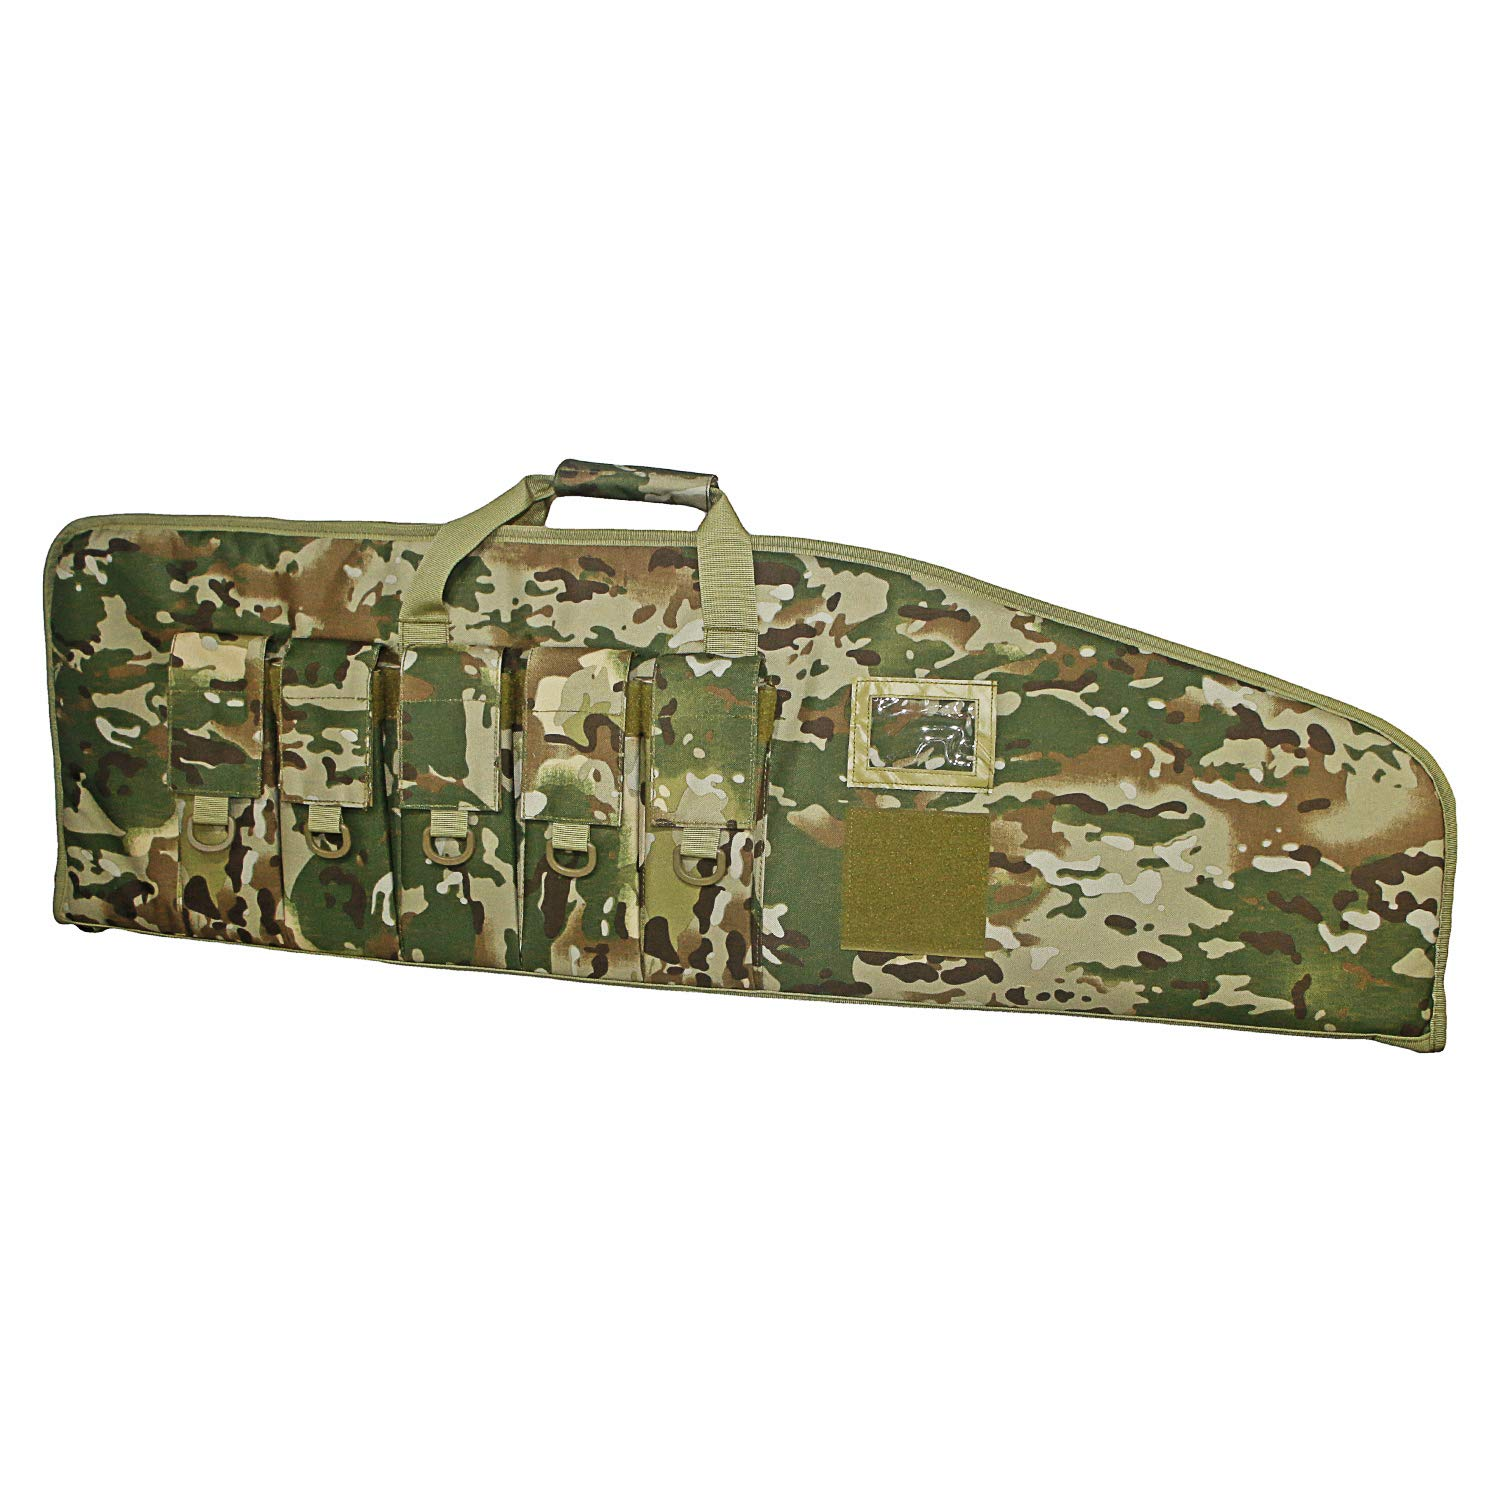 ARMYCAMOUSA Rifle Bag Outdoor Tactical Carbine Cases Water dust Resistant Long Gun Case Bag with Five Magazine Pouches for Hunting Shooting Range Sports Storage and Transport (OCP, 42'') by ARMYCAMOUSA